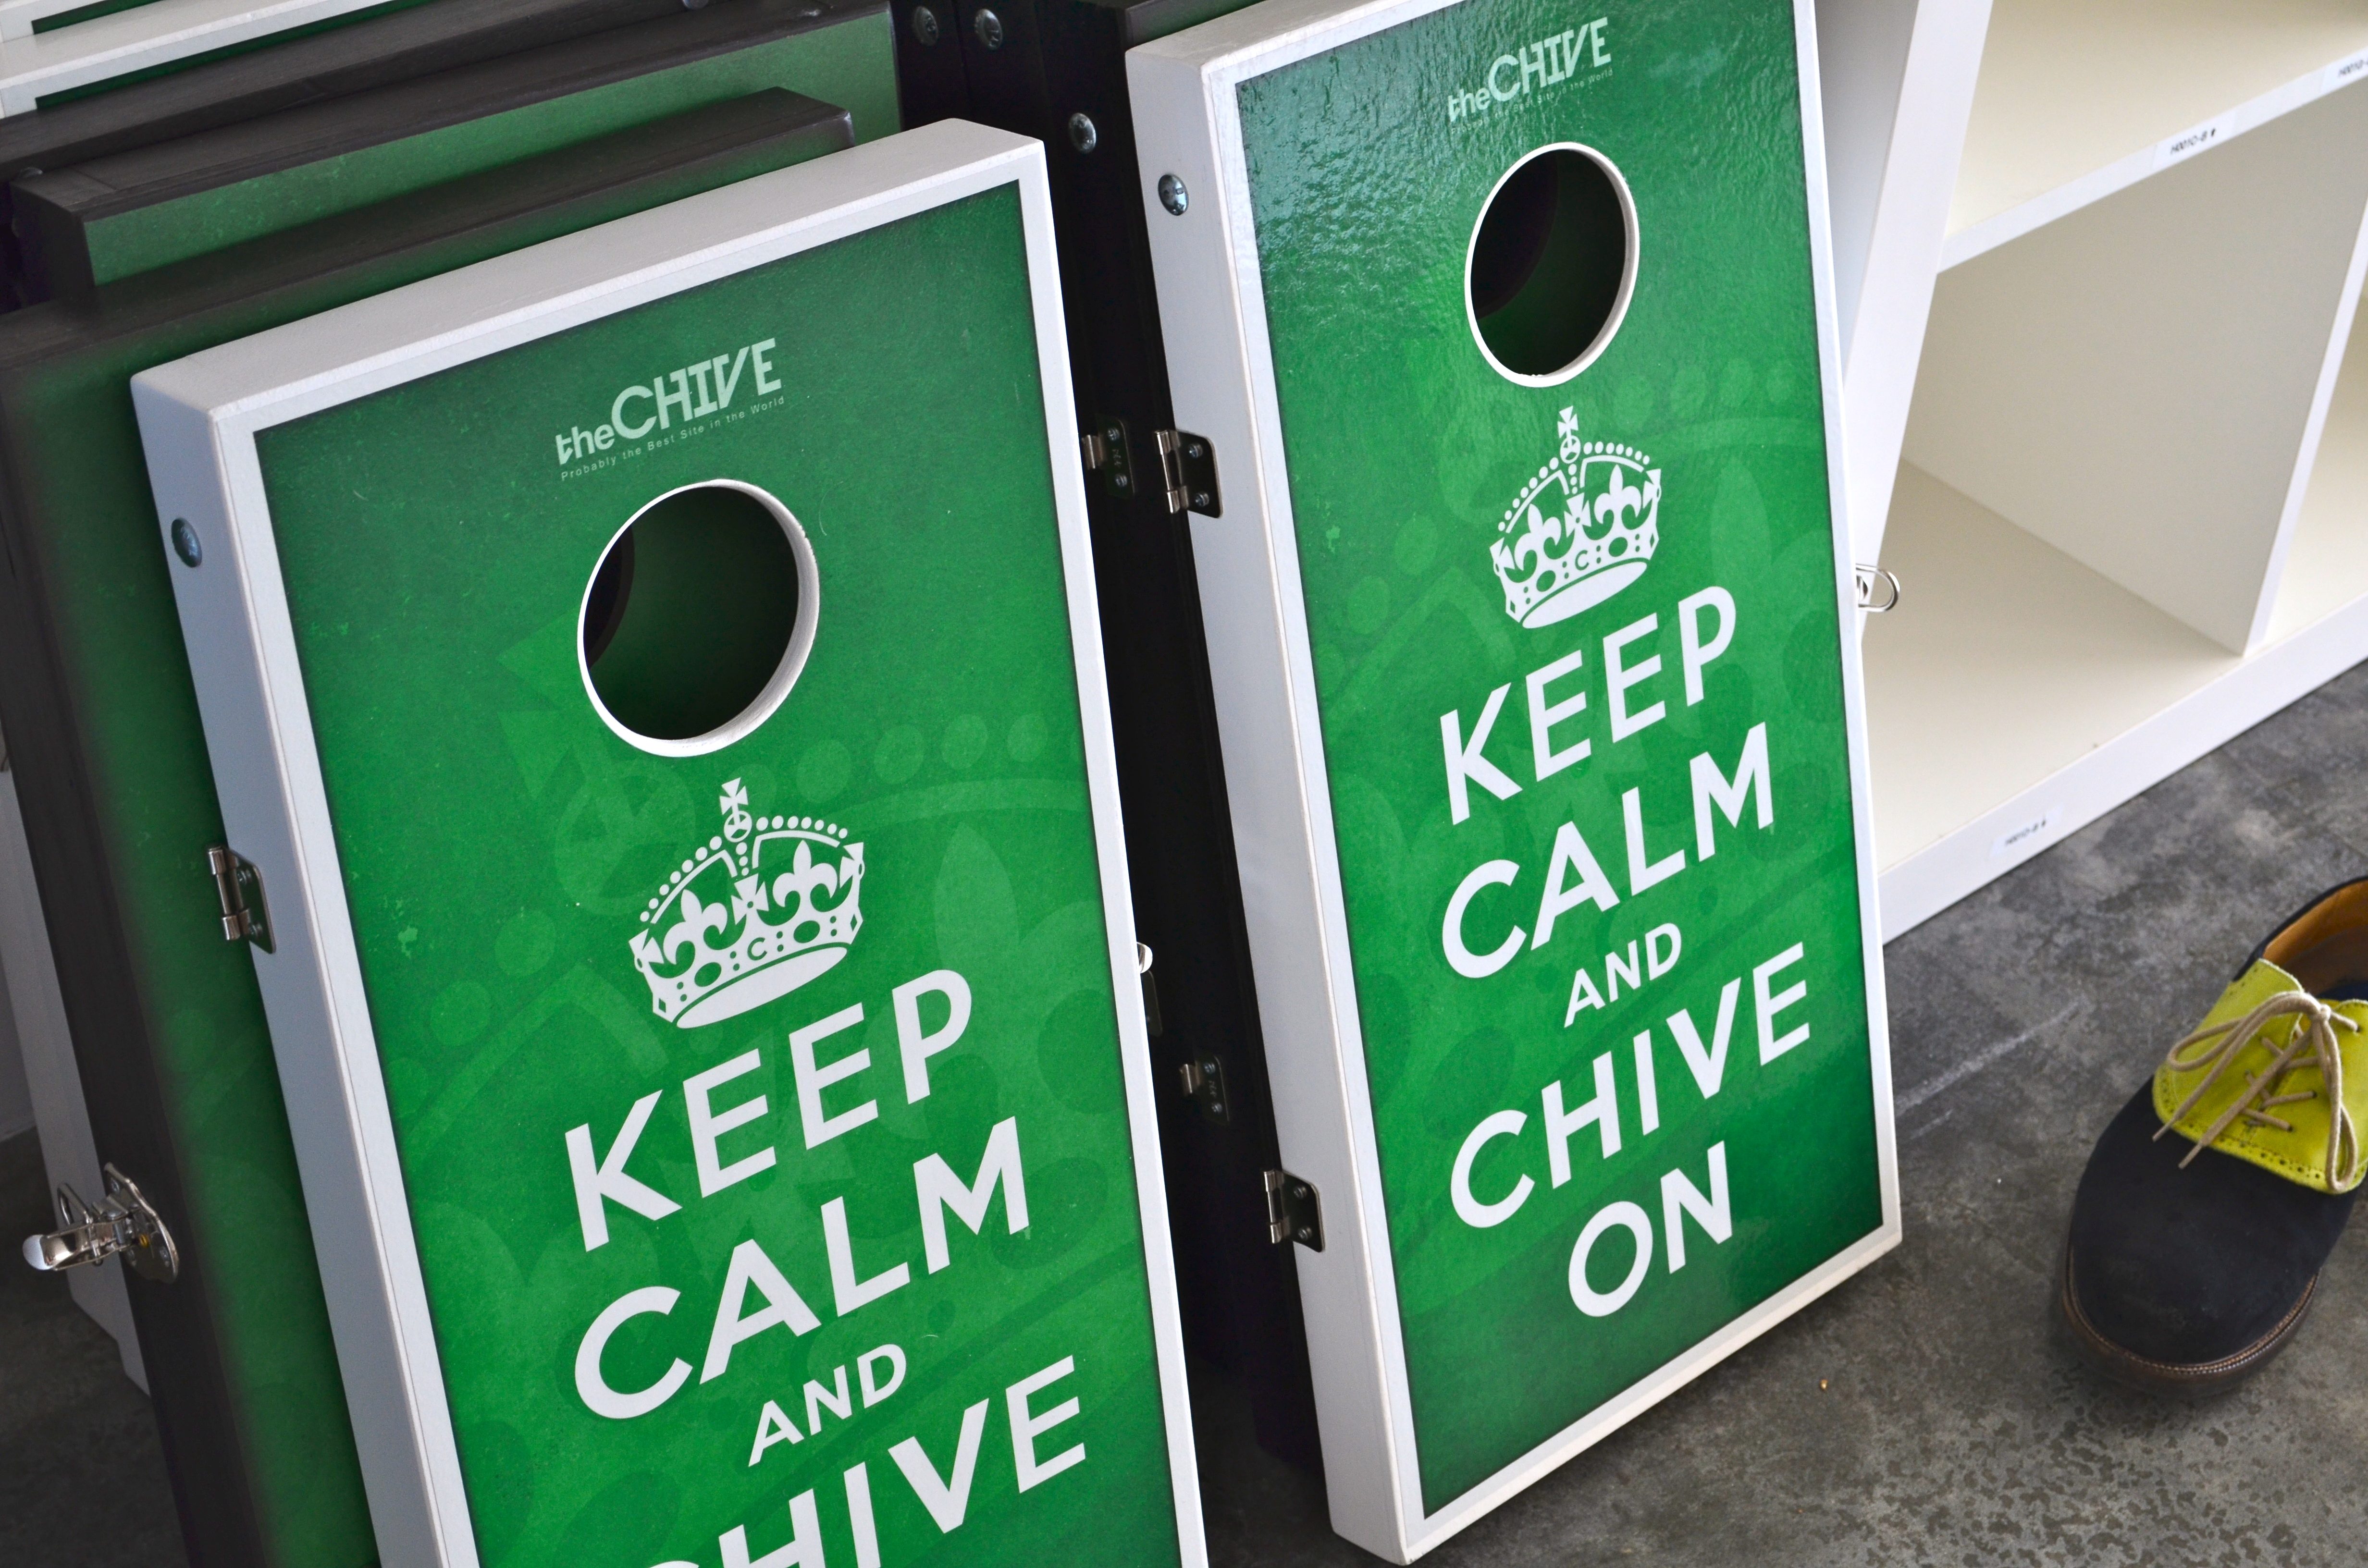 Thechive Office Throughout Thechive Office Austin Address Tx Chive Pics Interior Designs Ideas Fronterainformativaco